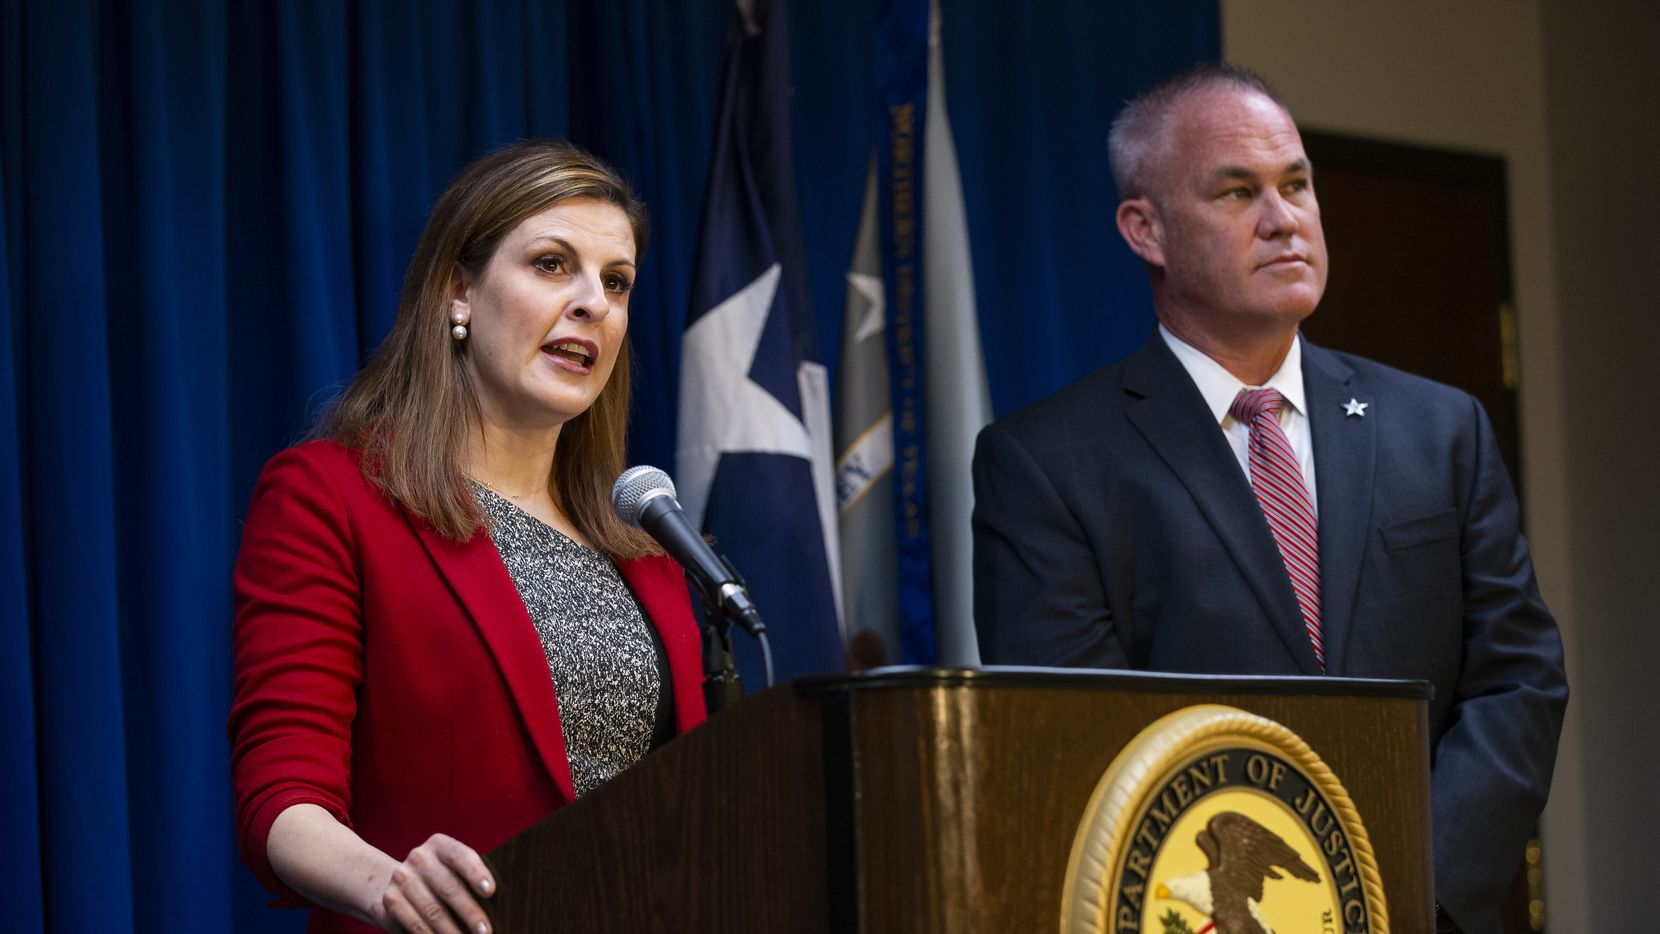 U.S. Attorney for the Northern District of Texas Erin Nealy Cox with ATF Special Agent in Charge Jeffrey C. Boshek II announced three arrests in Project Guardian, an effort to reduce gun violence, at a news conference on March 12, 2020, in Dallas.